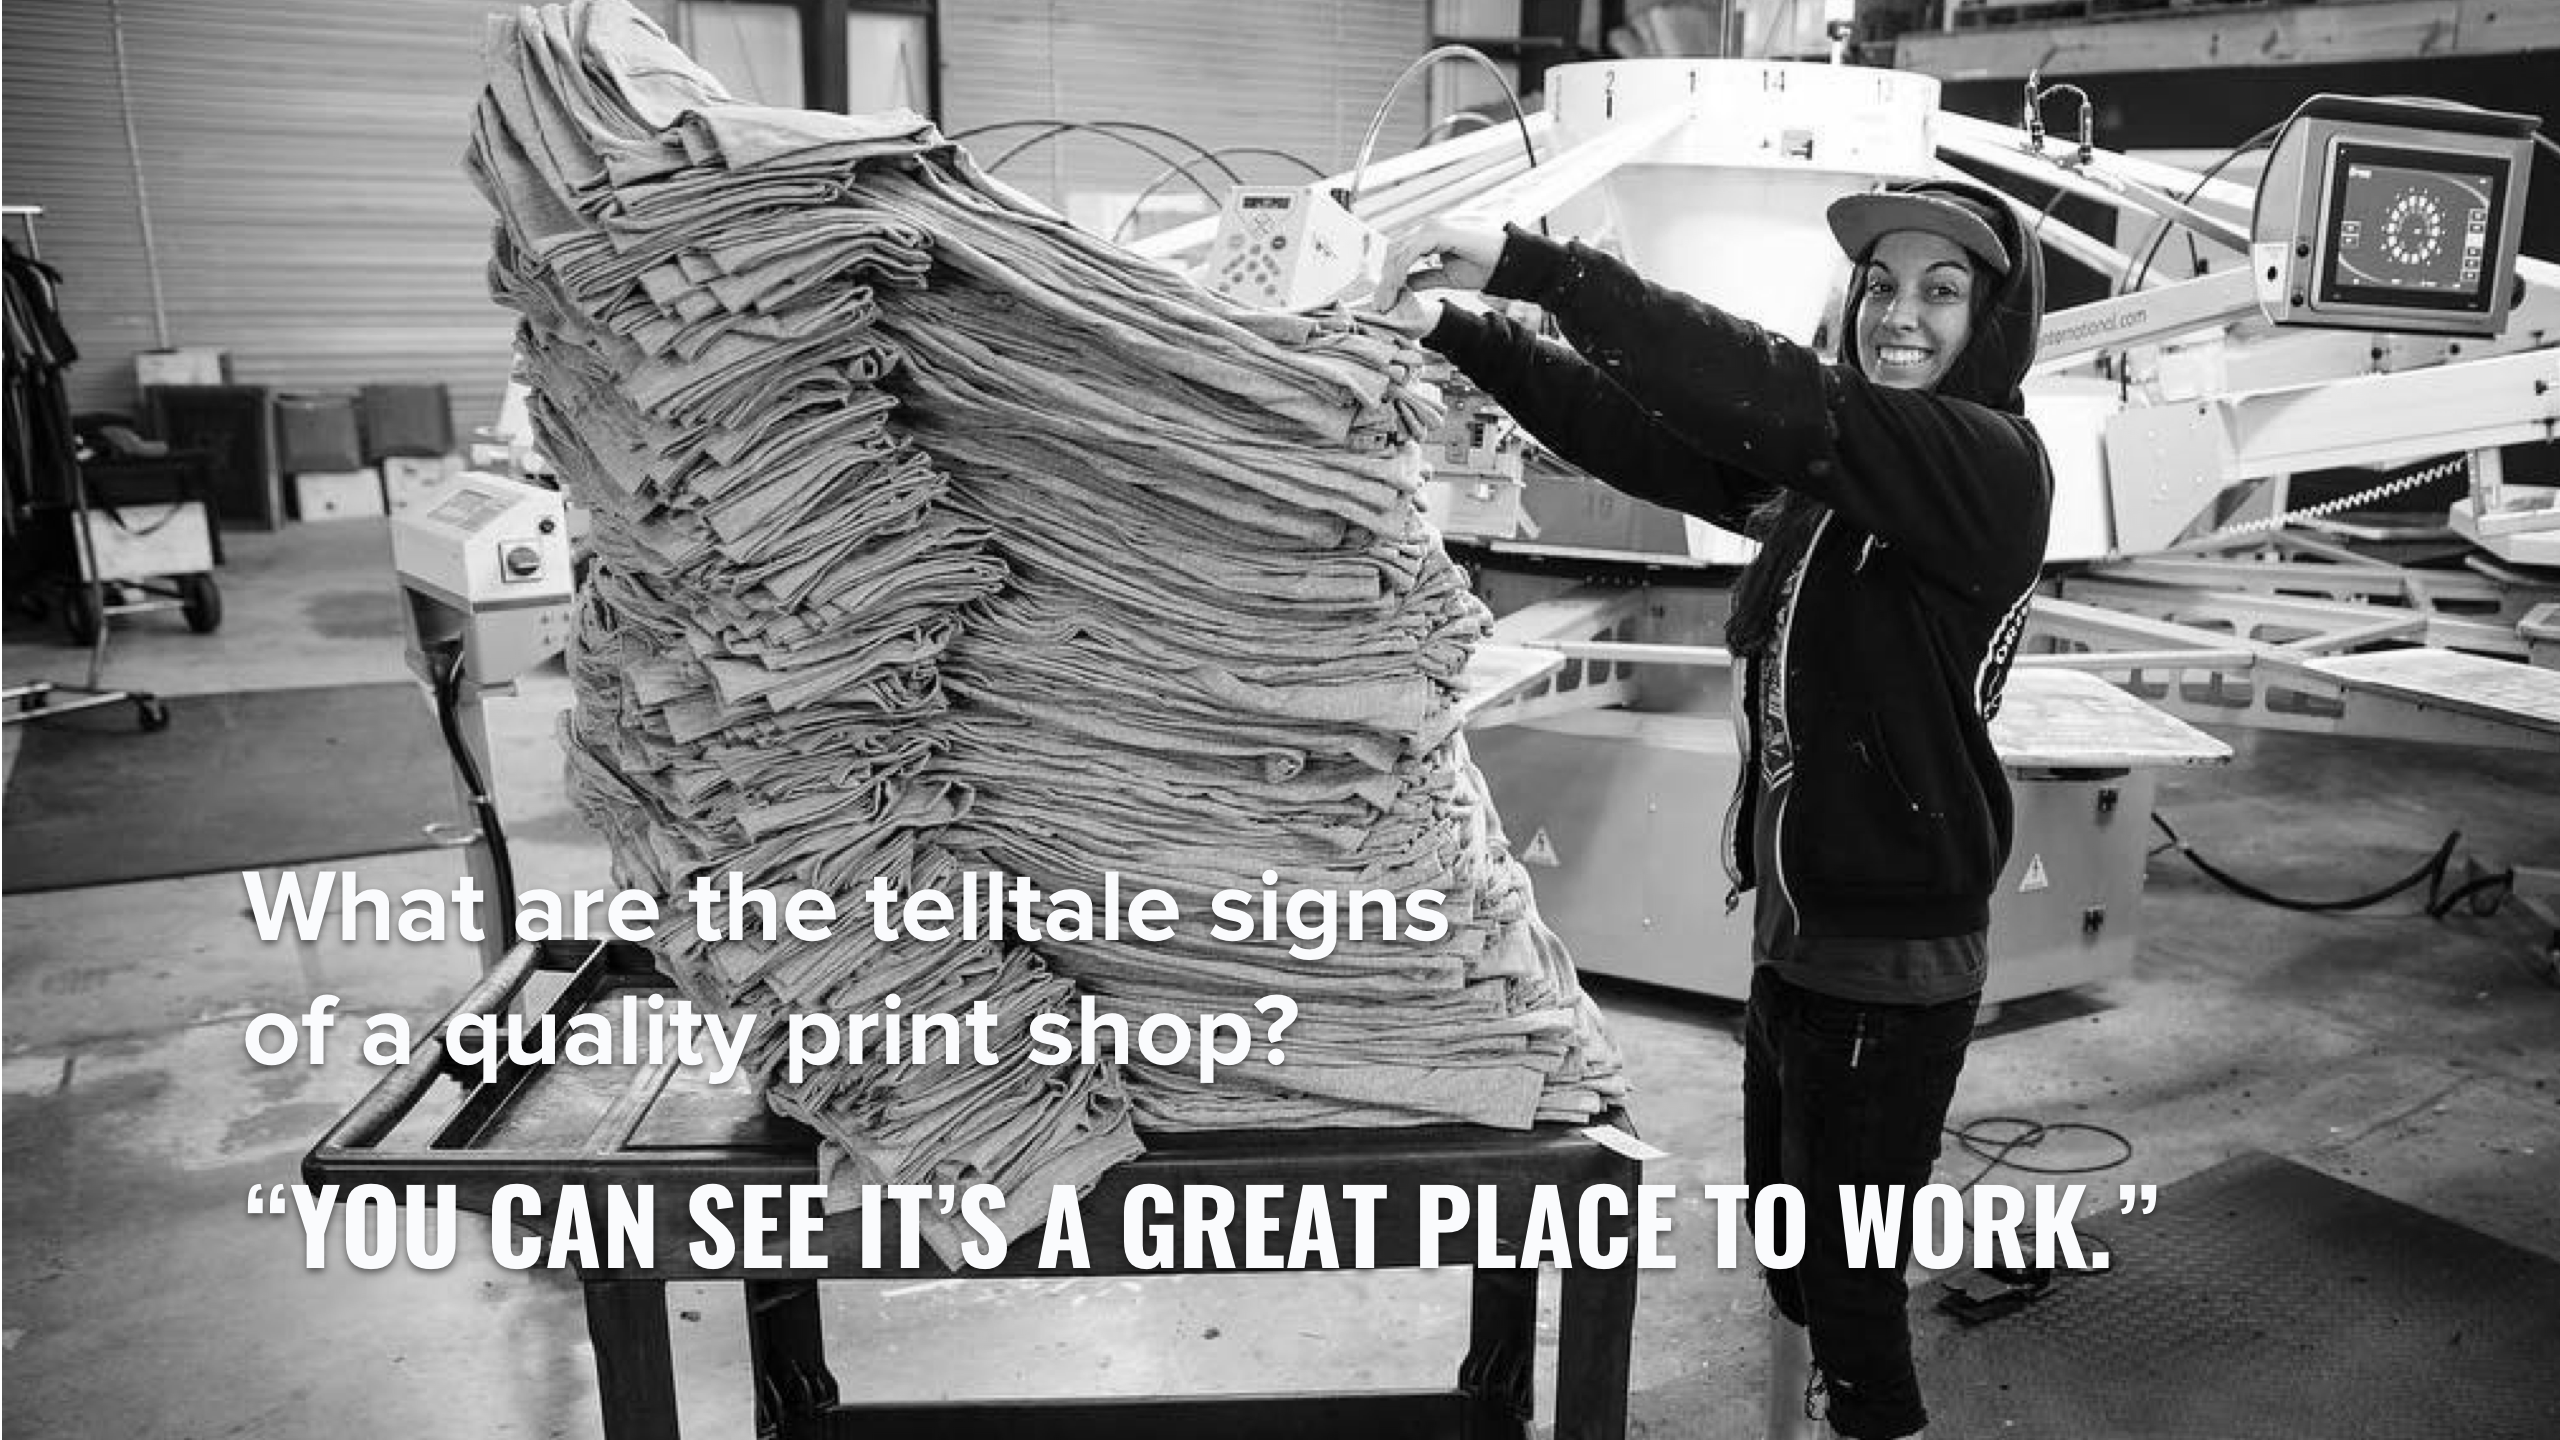 A screen printer with a large stack of shirts.